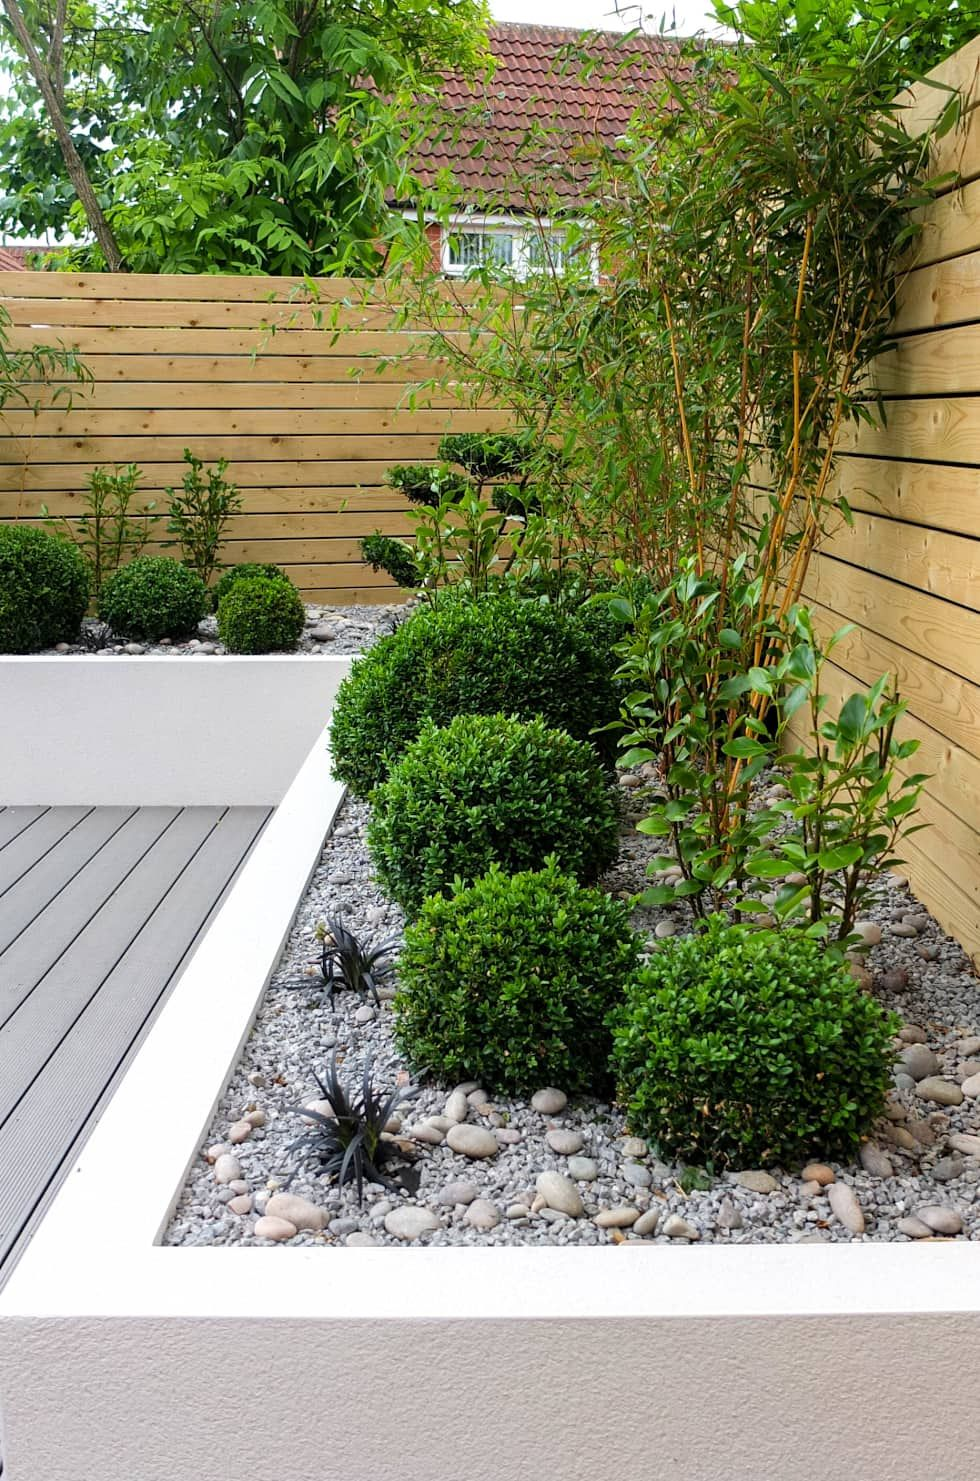 Merveilleux Small, Low Maintenance Garden: Minimalistic Garden By J B Landscapes LTD